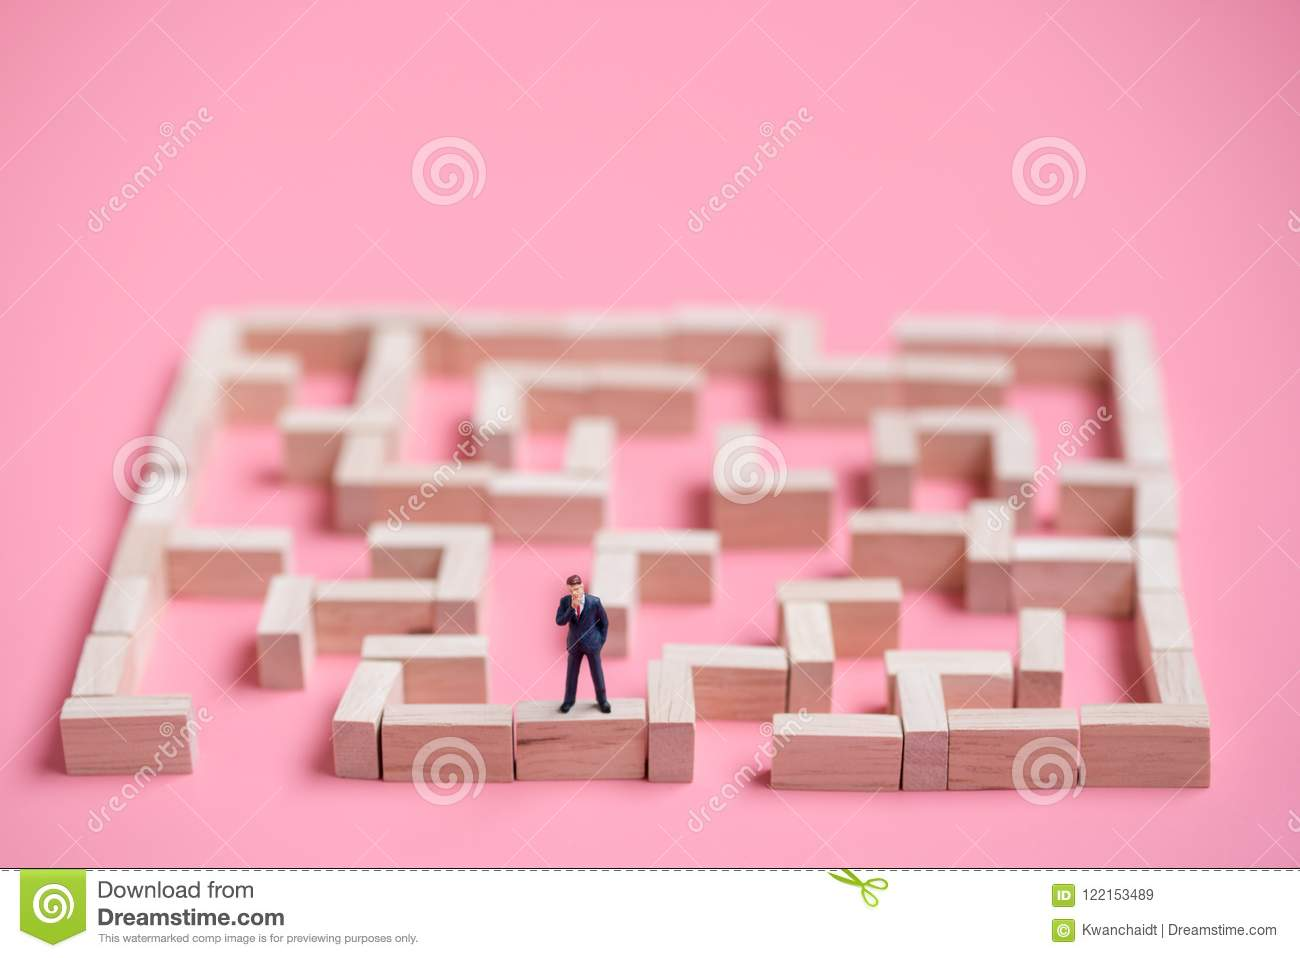 Business Miniature At The Start Point Of Puzzle Maze Wood Block